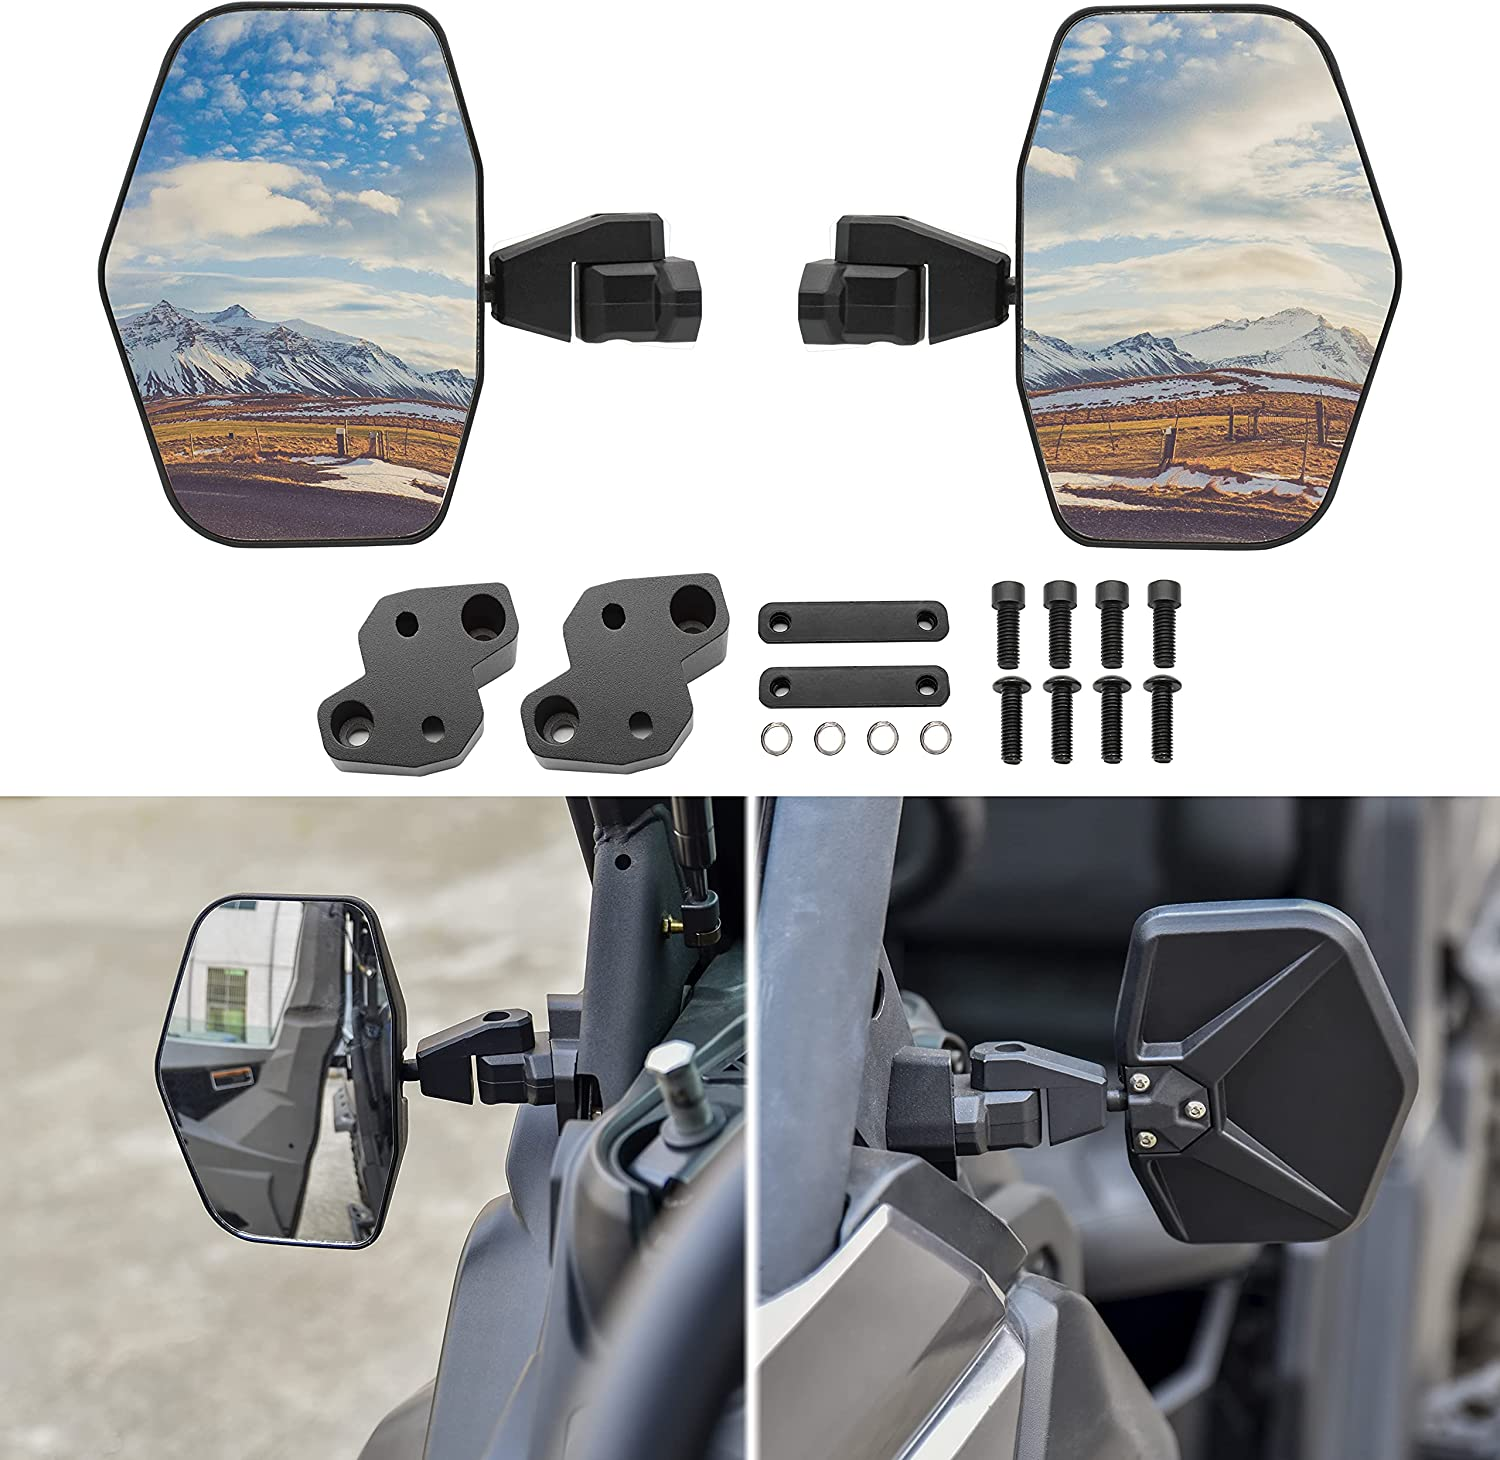 SAUTVS Wider Ajustable Aluminum Shell for 保障 代引き不可 Side Mirrors Rear View